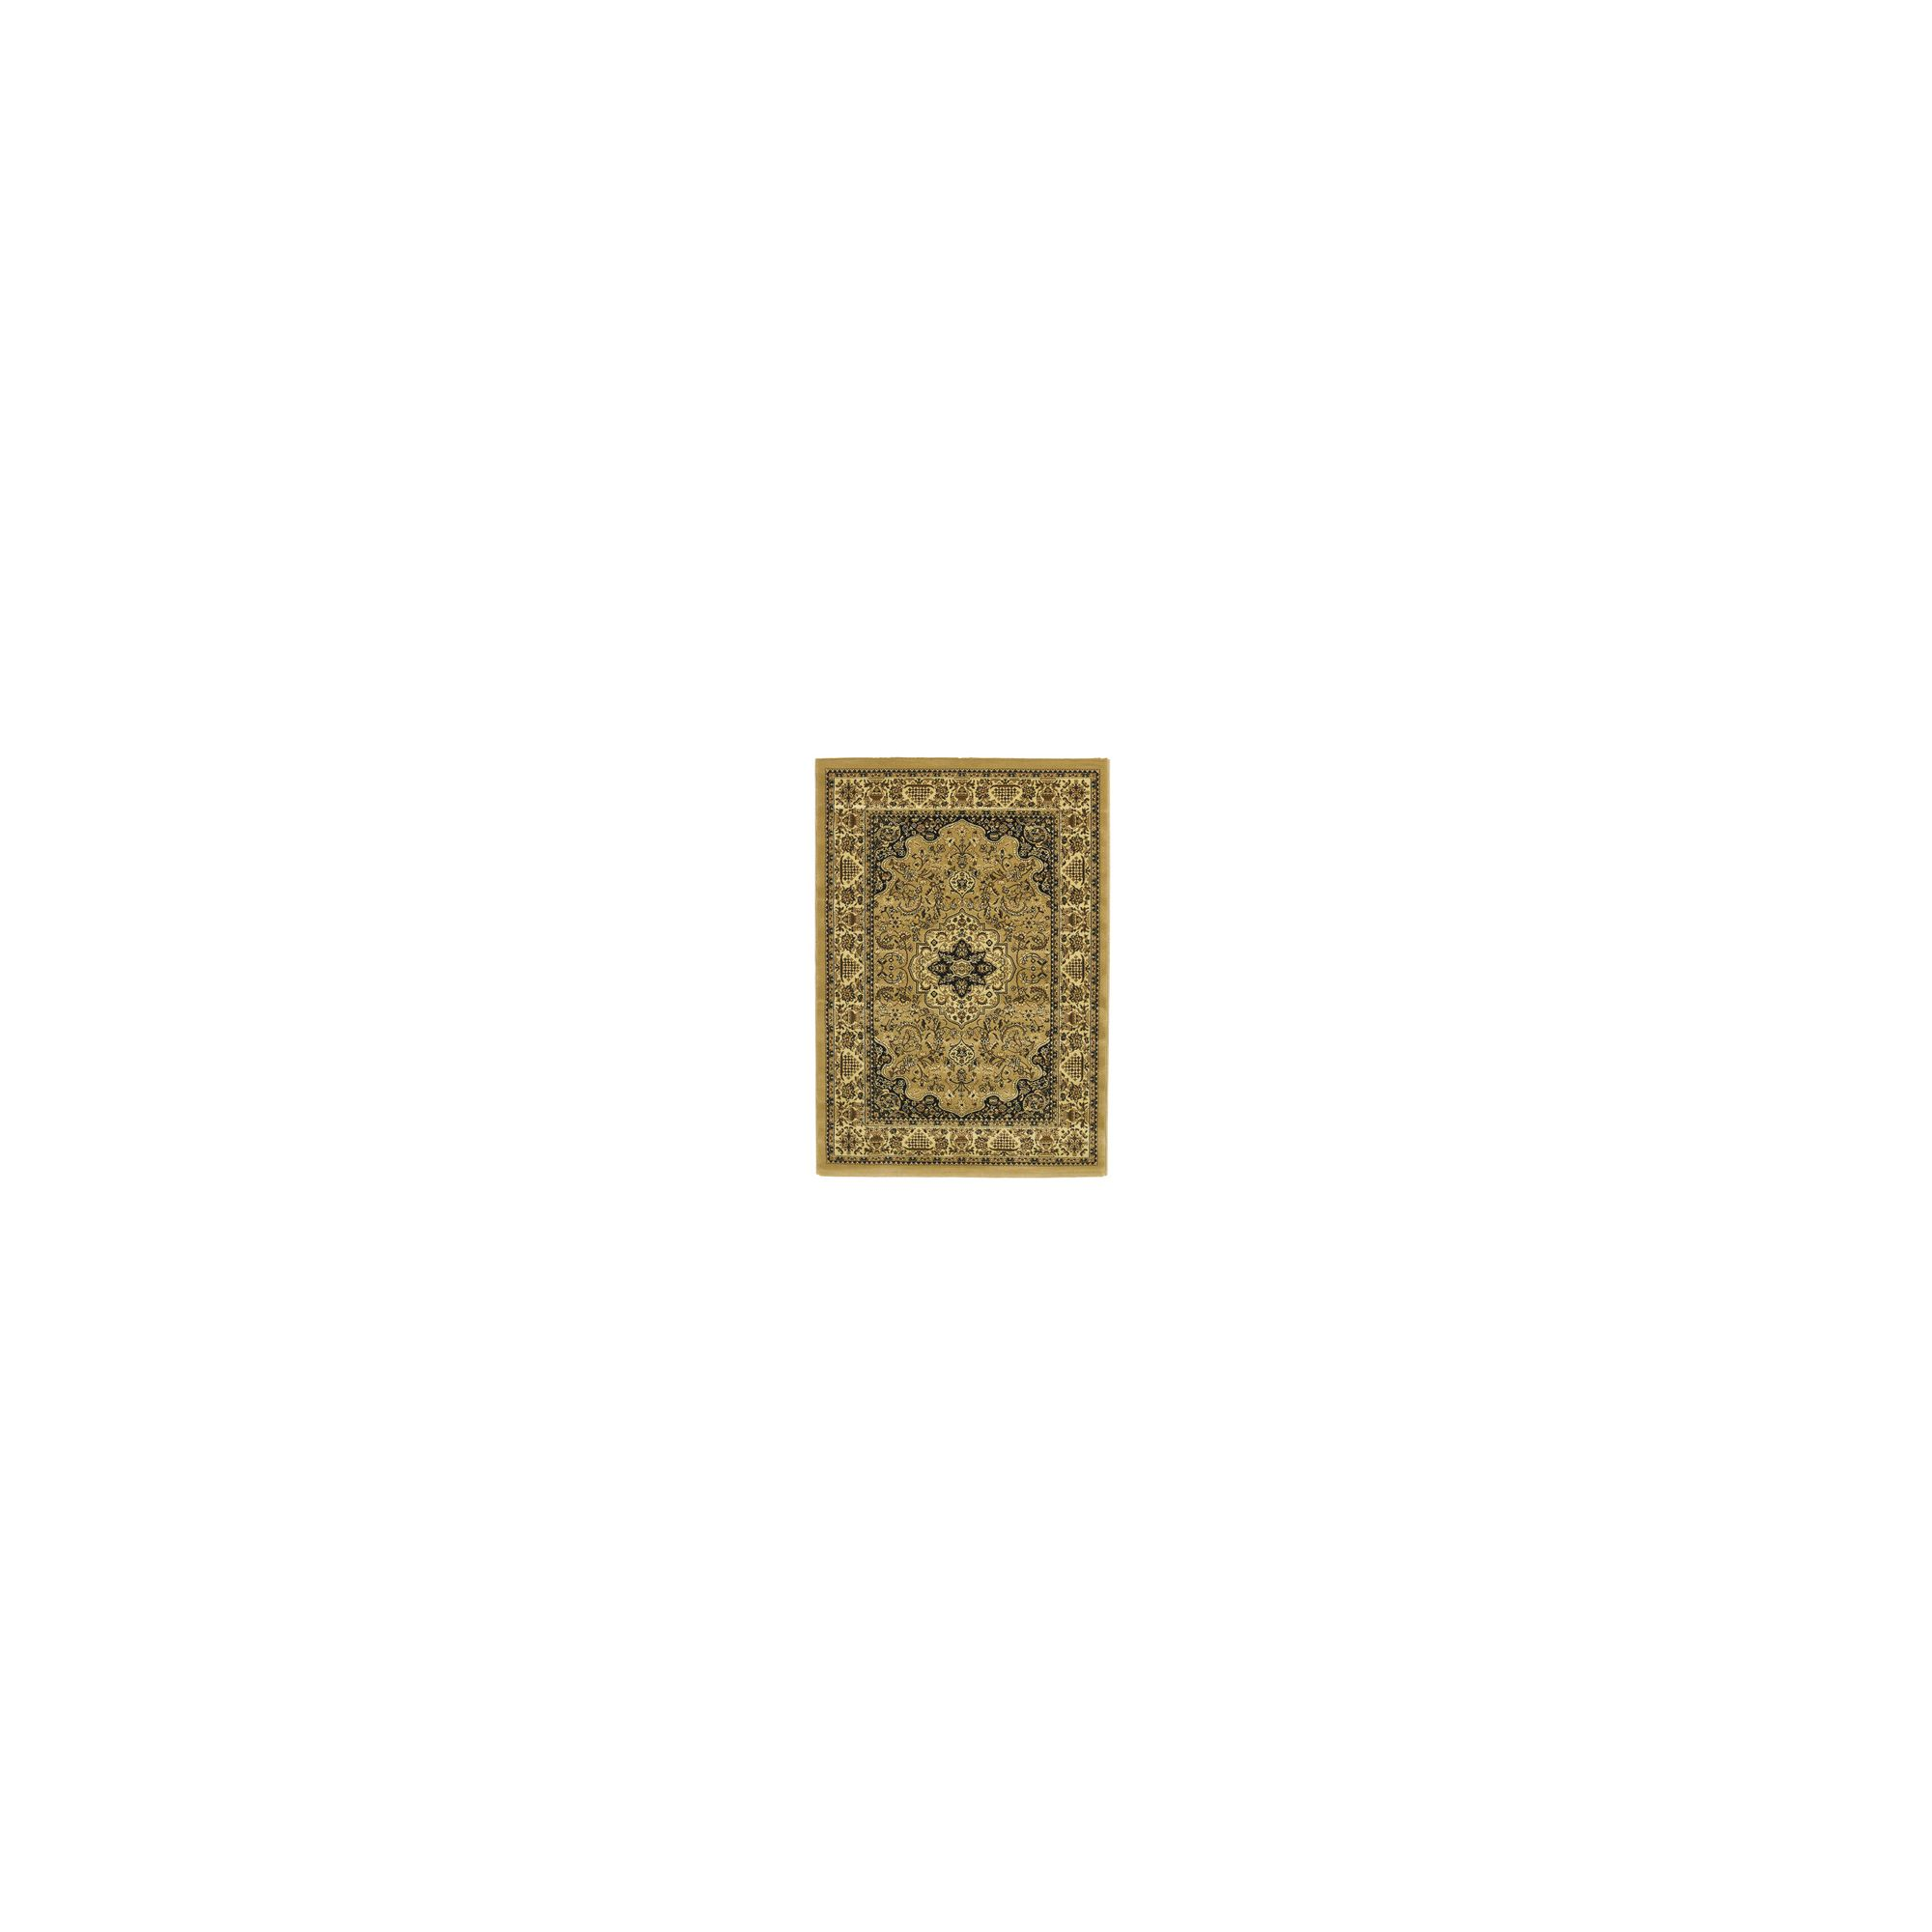 Oriental Carpets & Rugs Heritage 02A Beige Rug - 280cm x 380cm at Tesco Direct